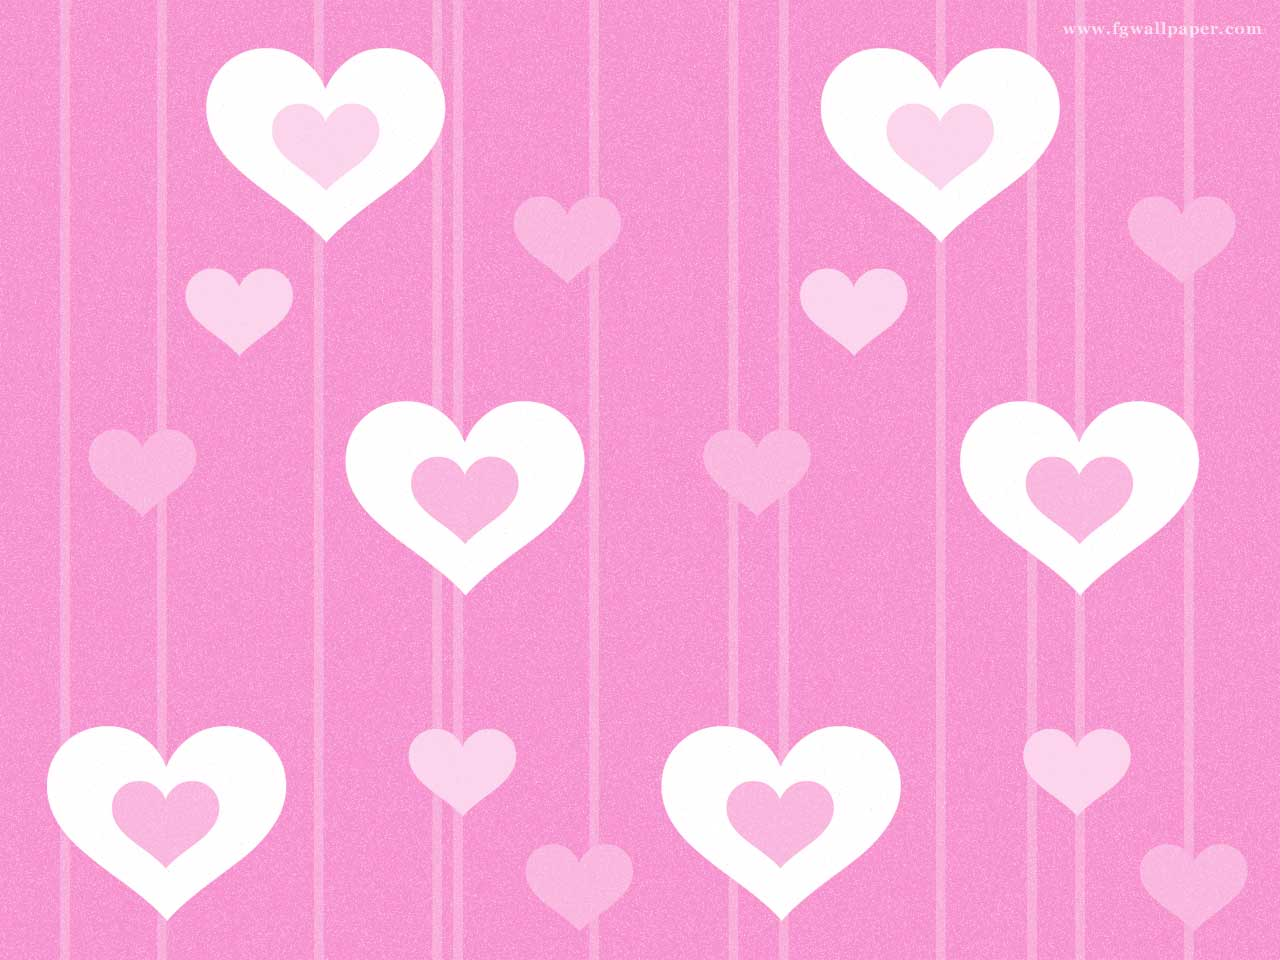 Love Wallpaper Pick : Love Pink Backgrounds - Wallpaper cave